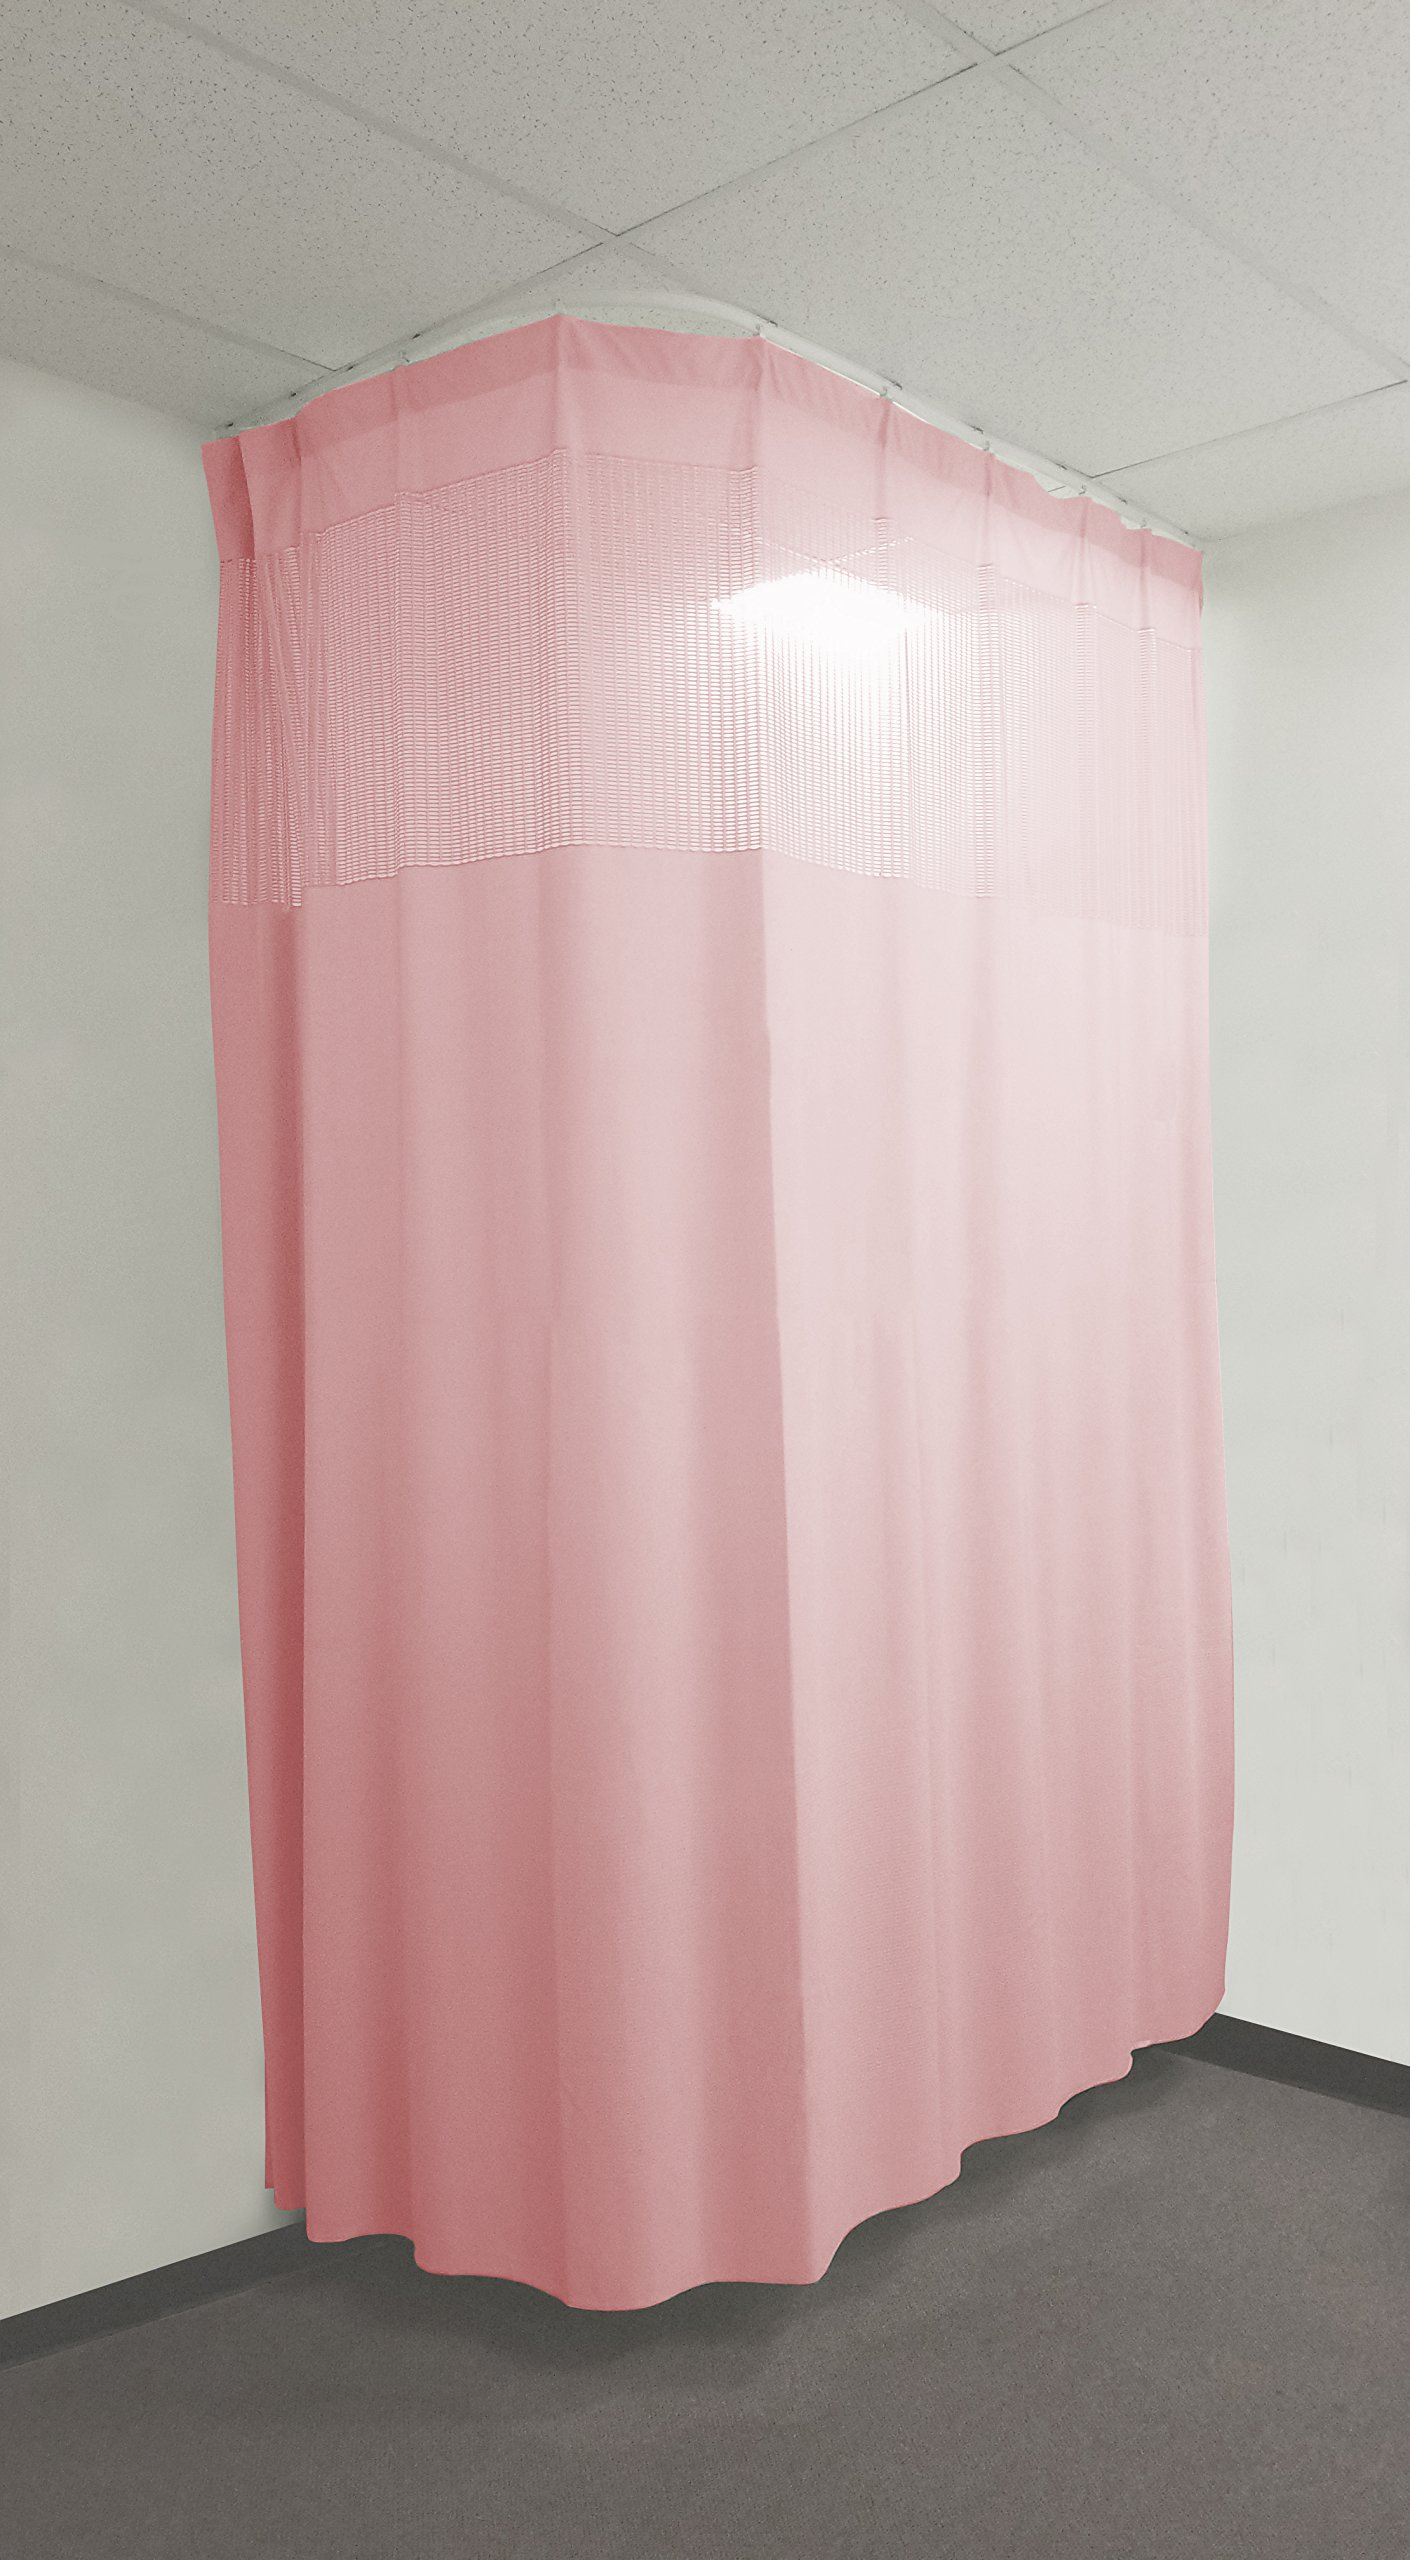 20Ft Medical Privacy Flexible Curtains High Ceiling Hospital Lab Clinic Curved Room Decorative w/ Track- 10ft High (Pink)